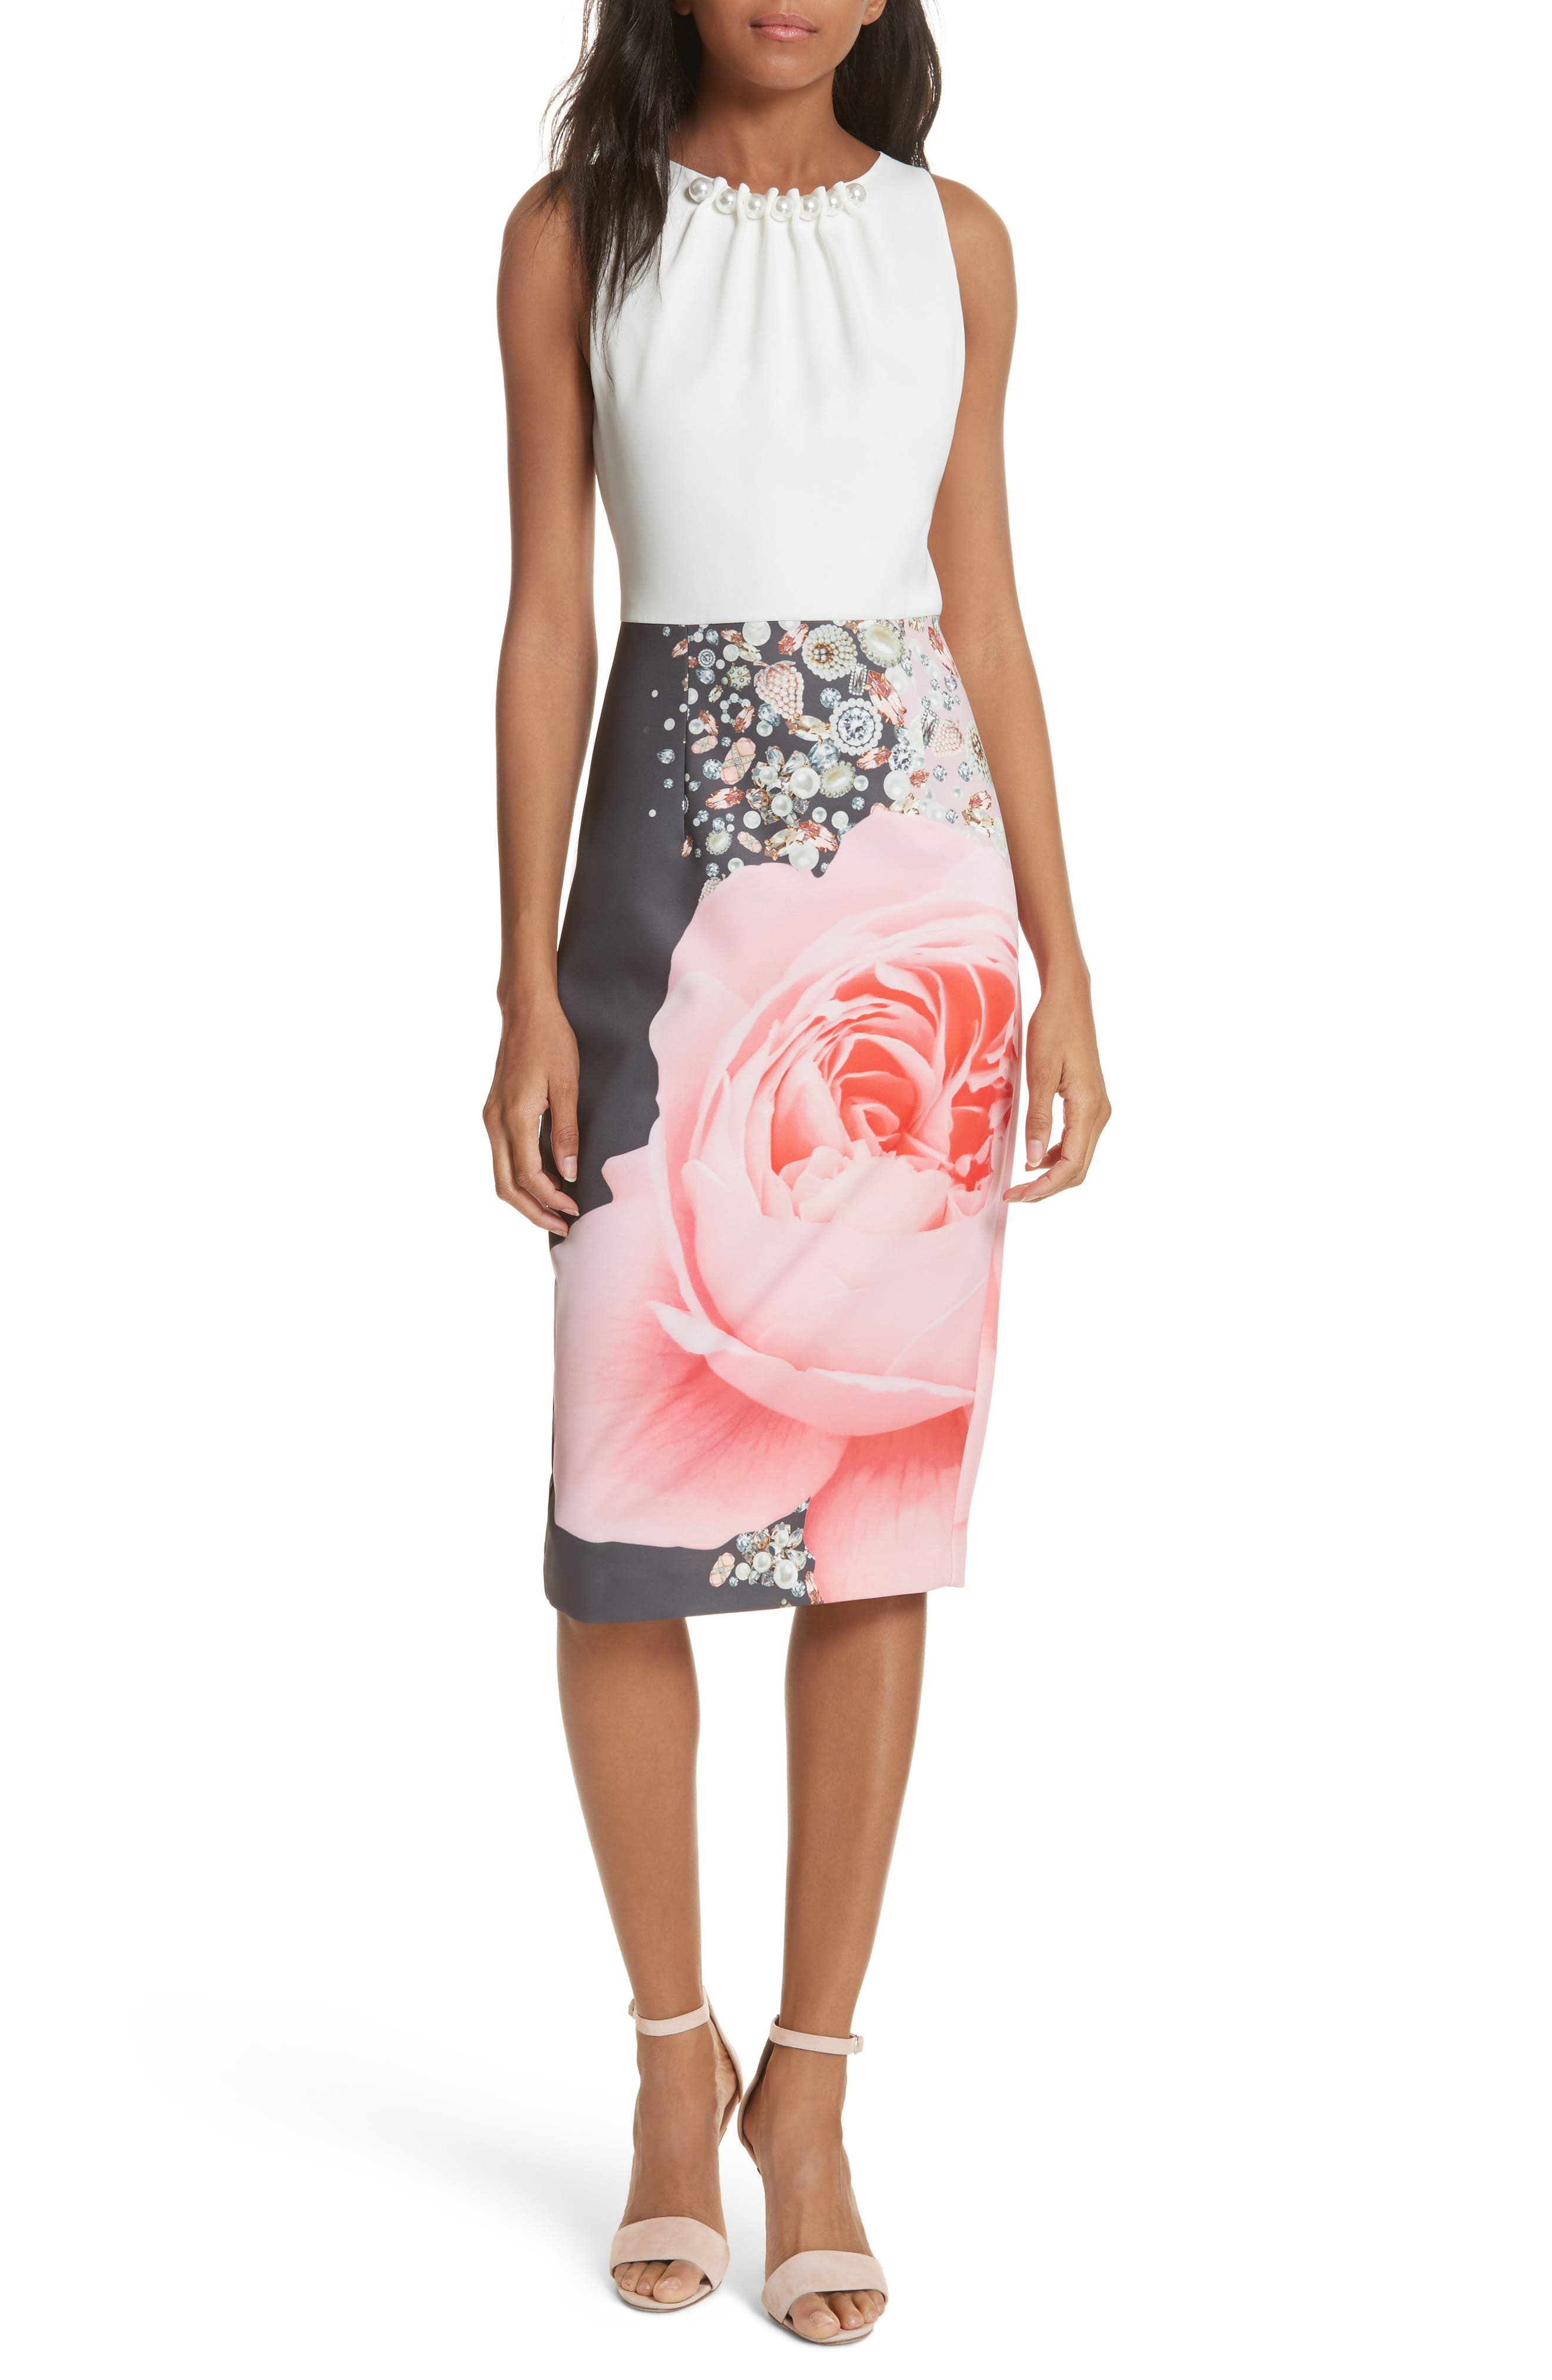 TED BAKER LONDON Blenheim Palace Embellished Body-Con Dress, Main, color, 253